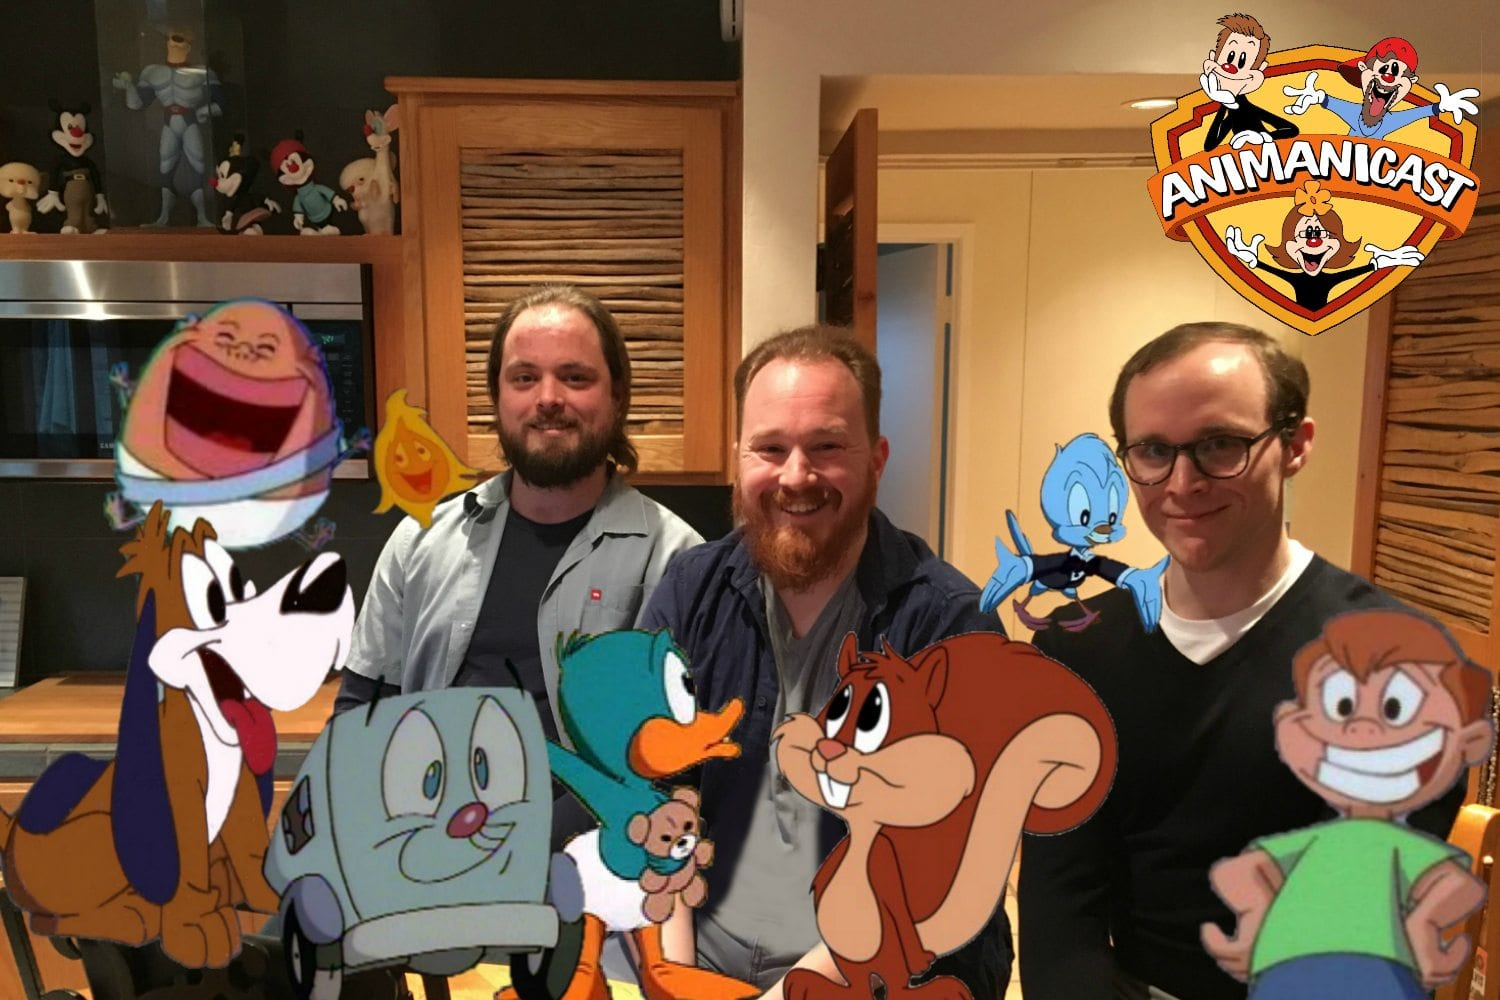 Animanicast #68a: Discussing Animaniacs with Nate, Luke and Cody Ruegger along with their father, Tom Ruegger